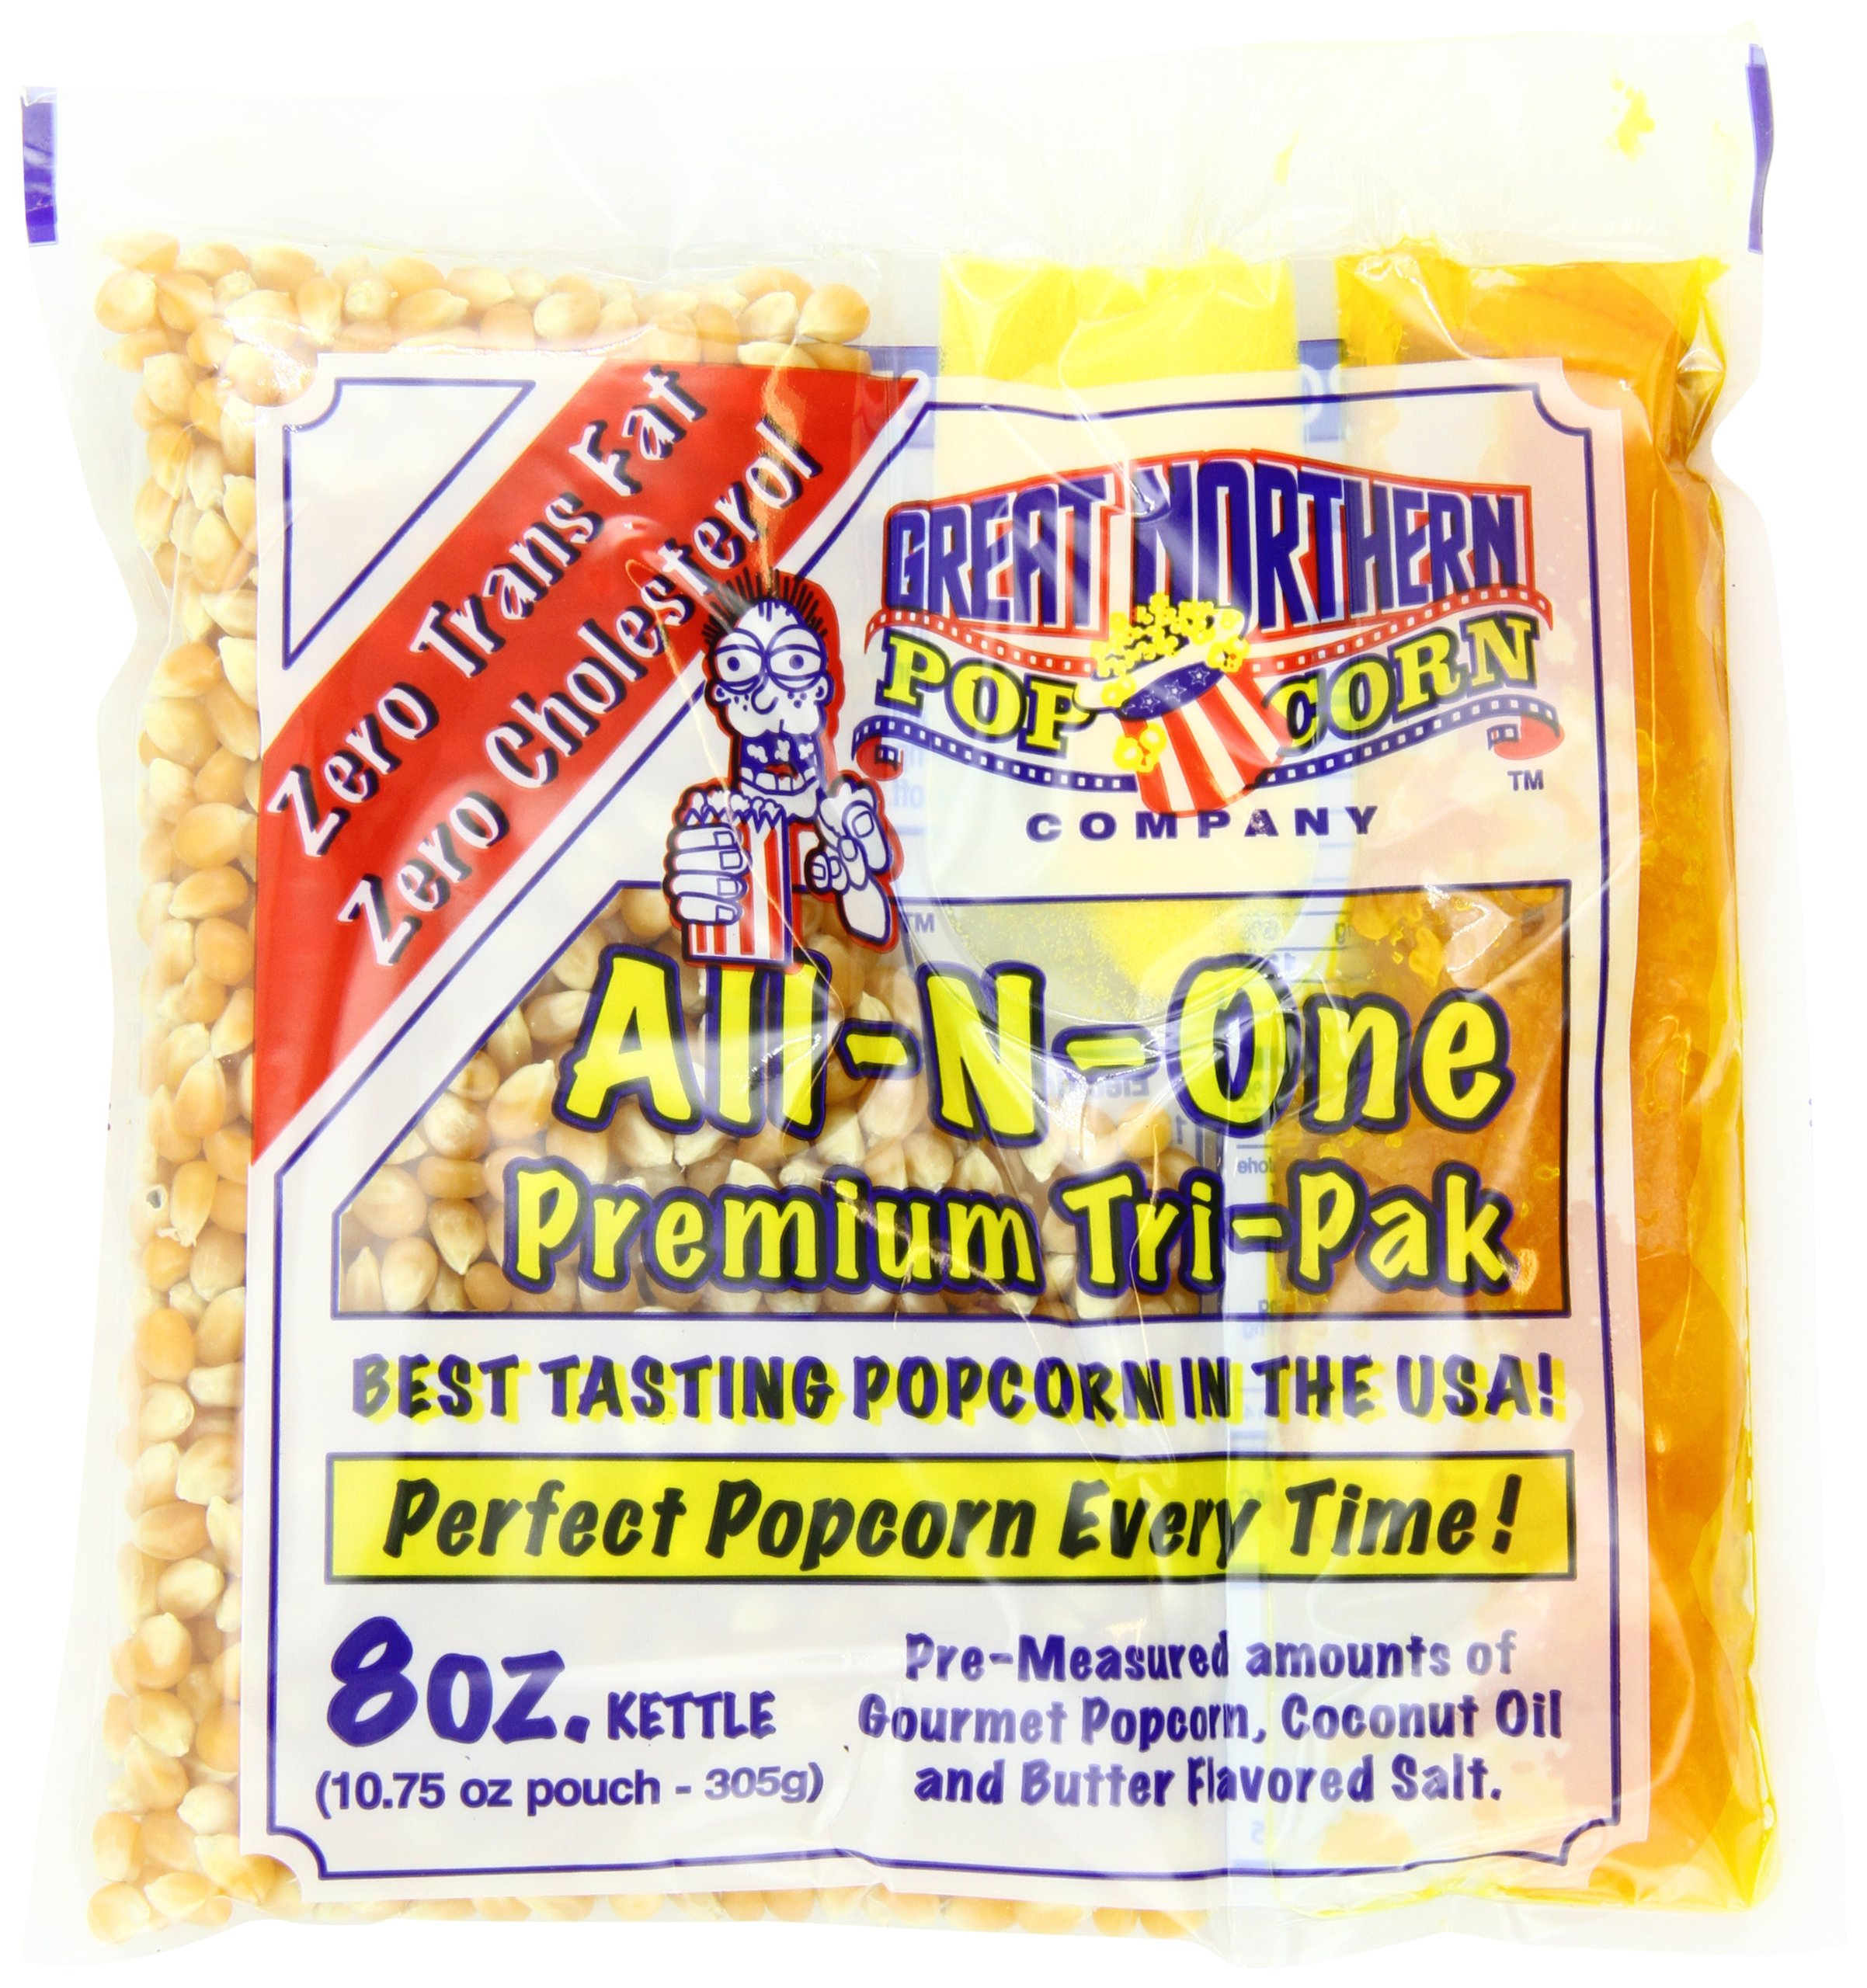 4110 Great Northern Popcorn Premium 8 Ounce Popcorn Portion Packs, Case of 24 by Great Northern Popcorn Company